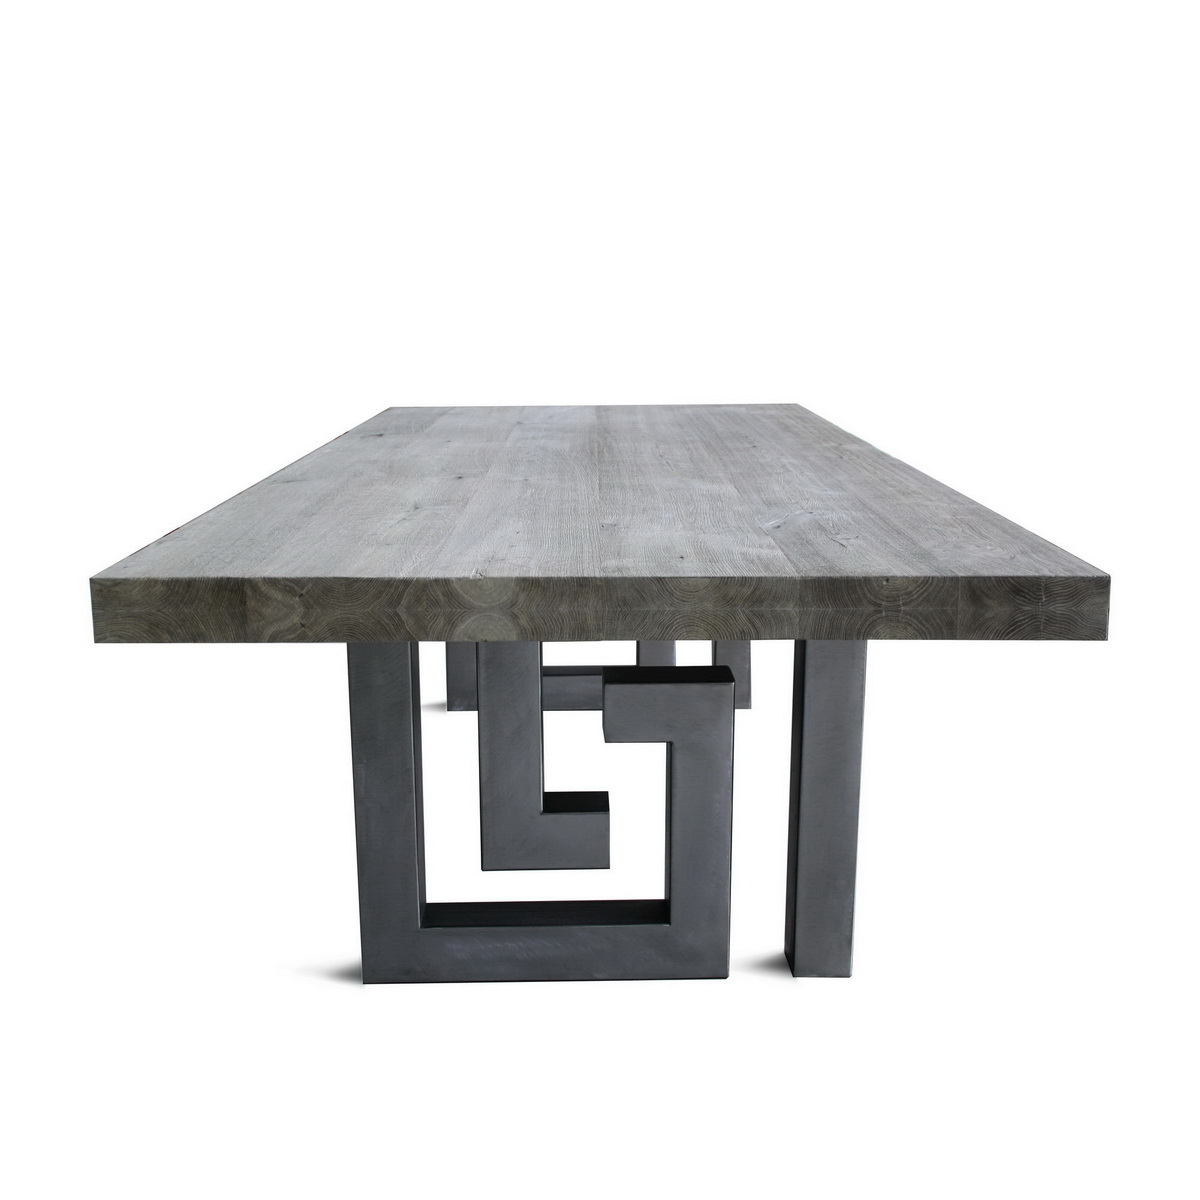 Table rabattable cuisine paris fabricant de meuble design - Table bois massif design ...